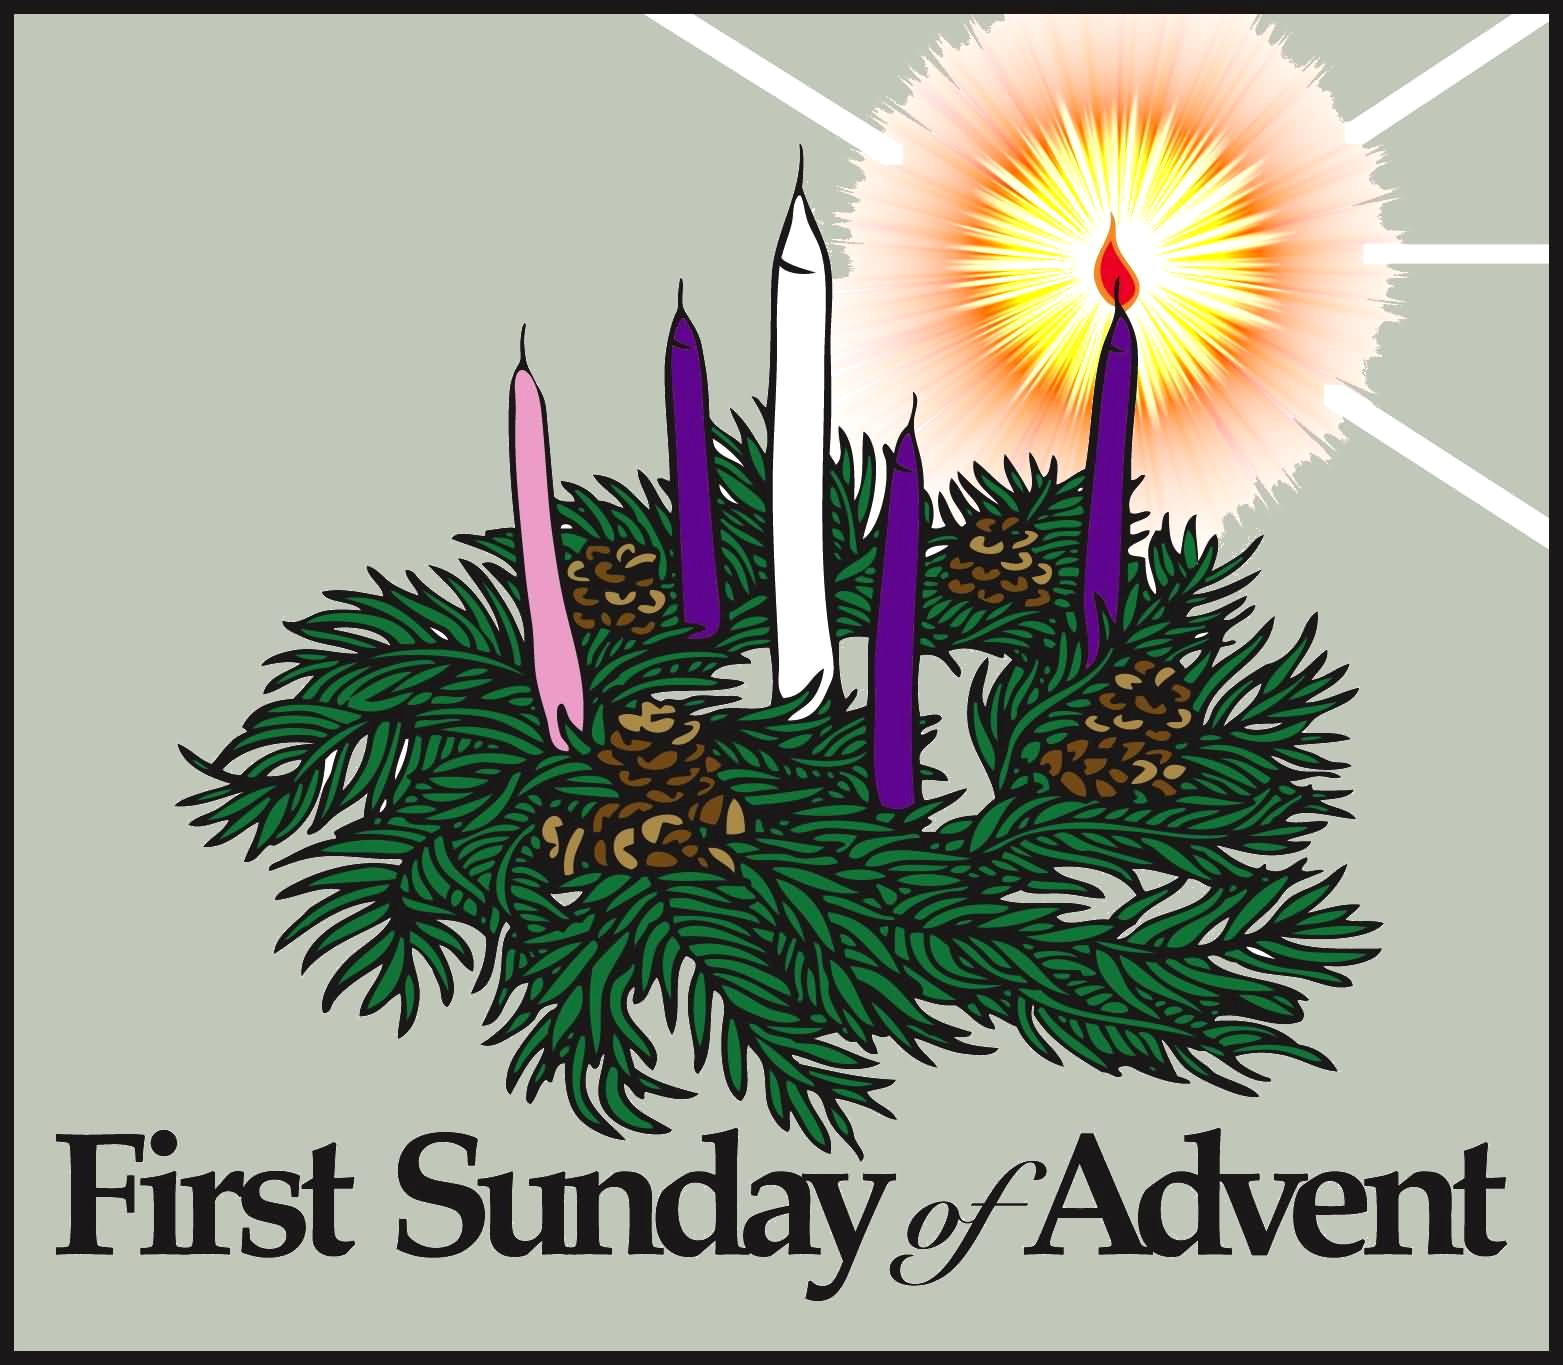 Third sunday of advent clipart 1 » Clipart Station.